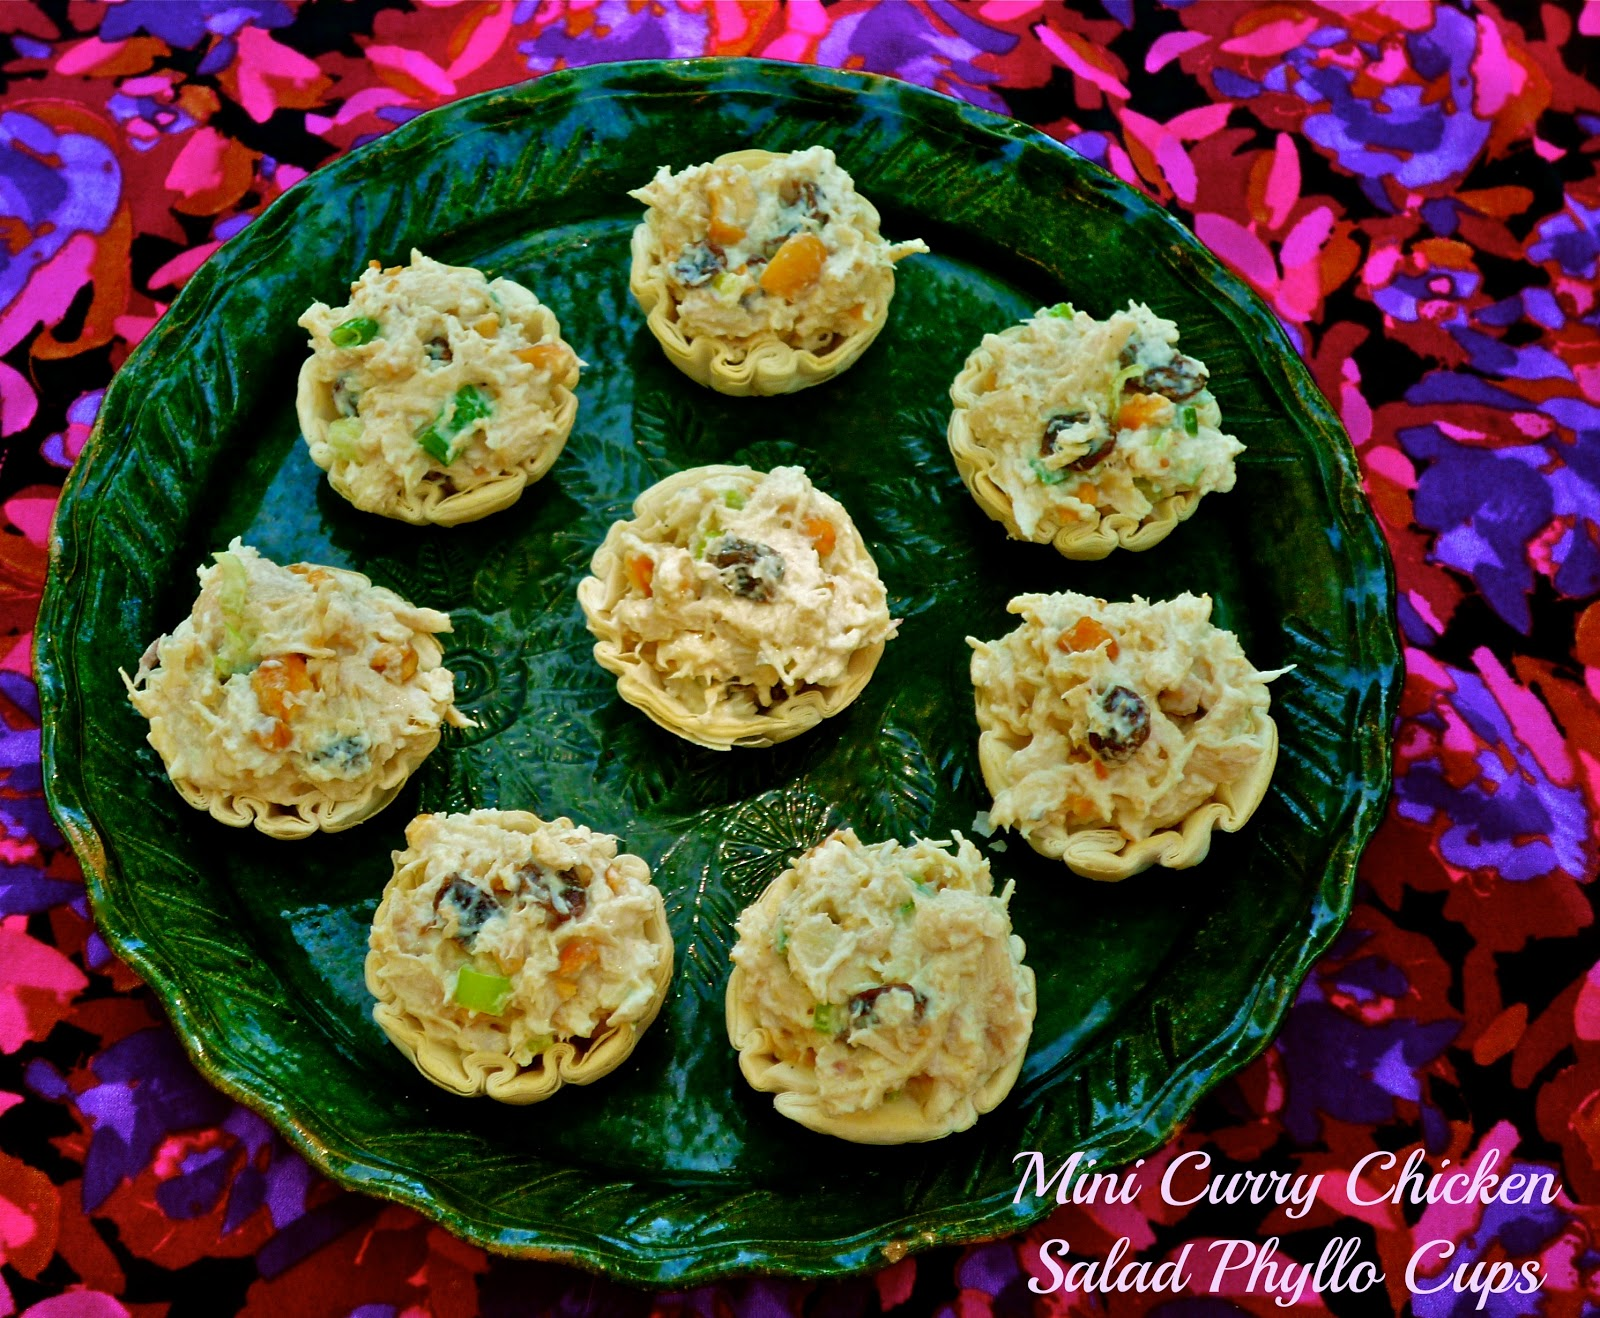 The weekend gourmet april showers sundaysupperfeaturing mini featuring mini curry chicken salad phyllo cups forumfinder Gallery